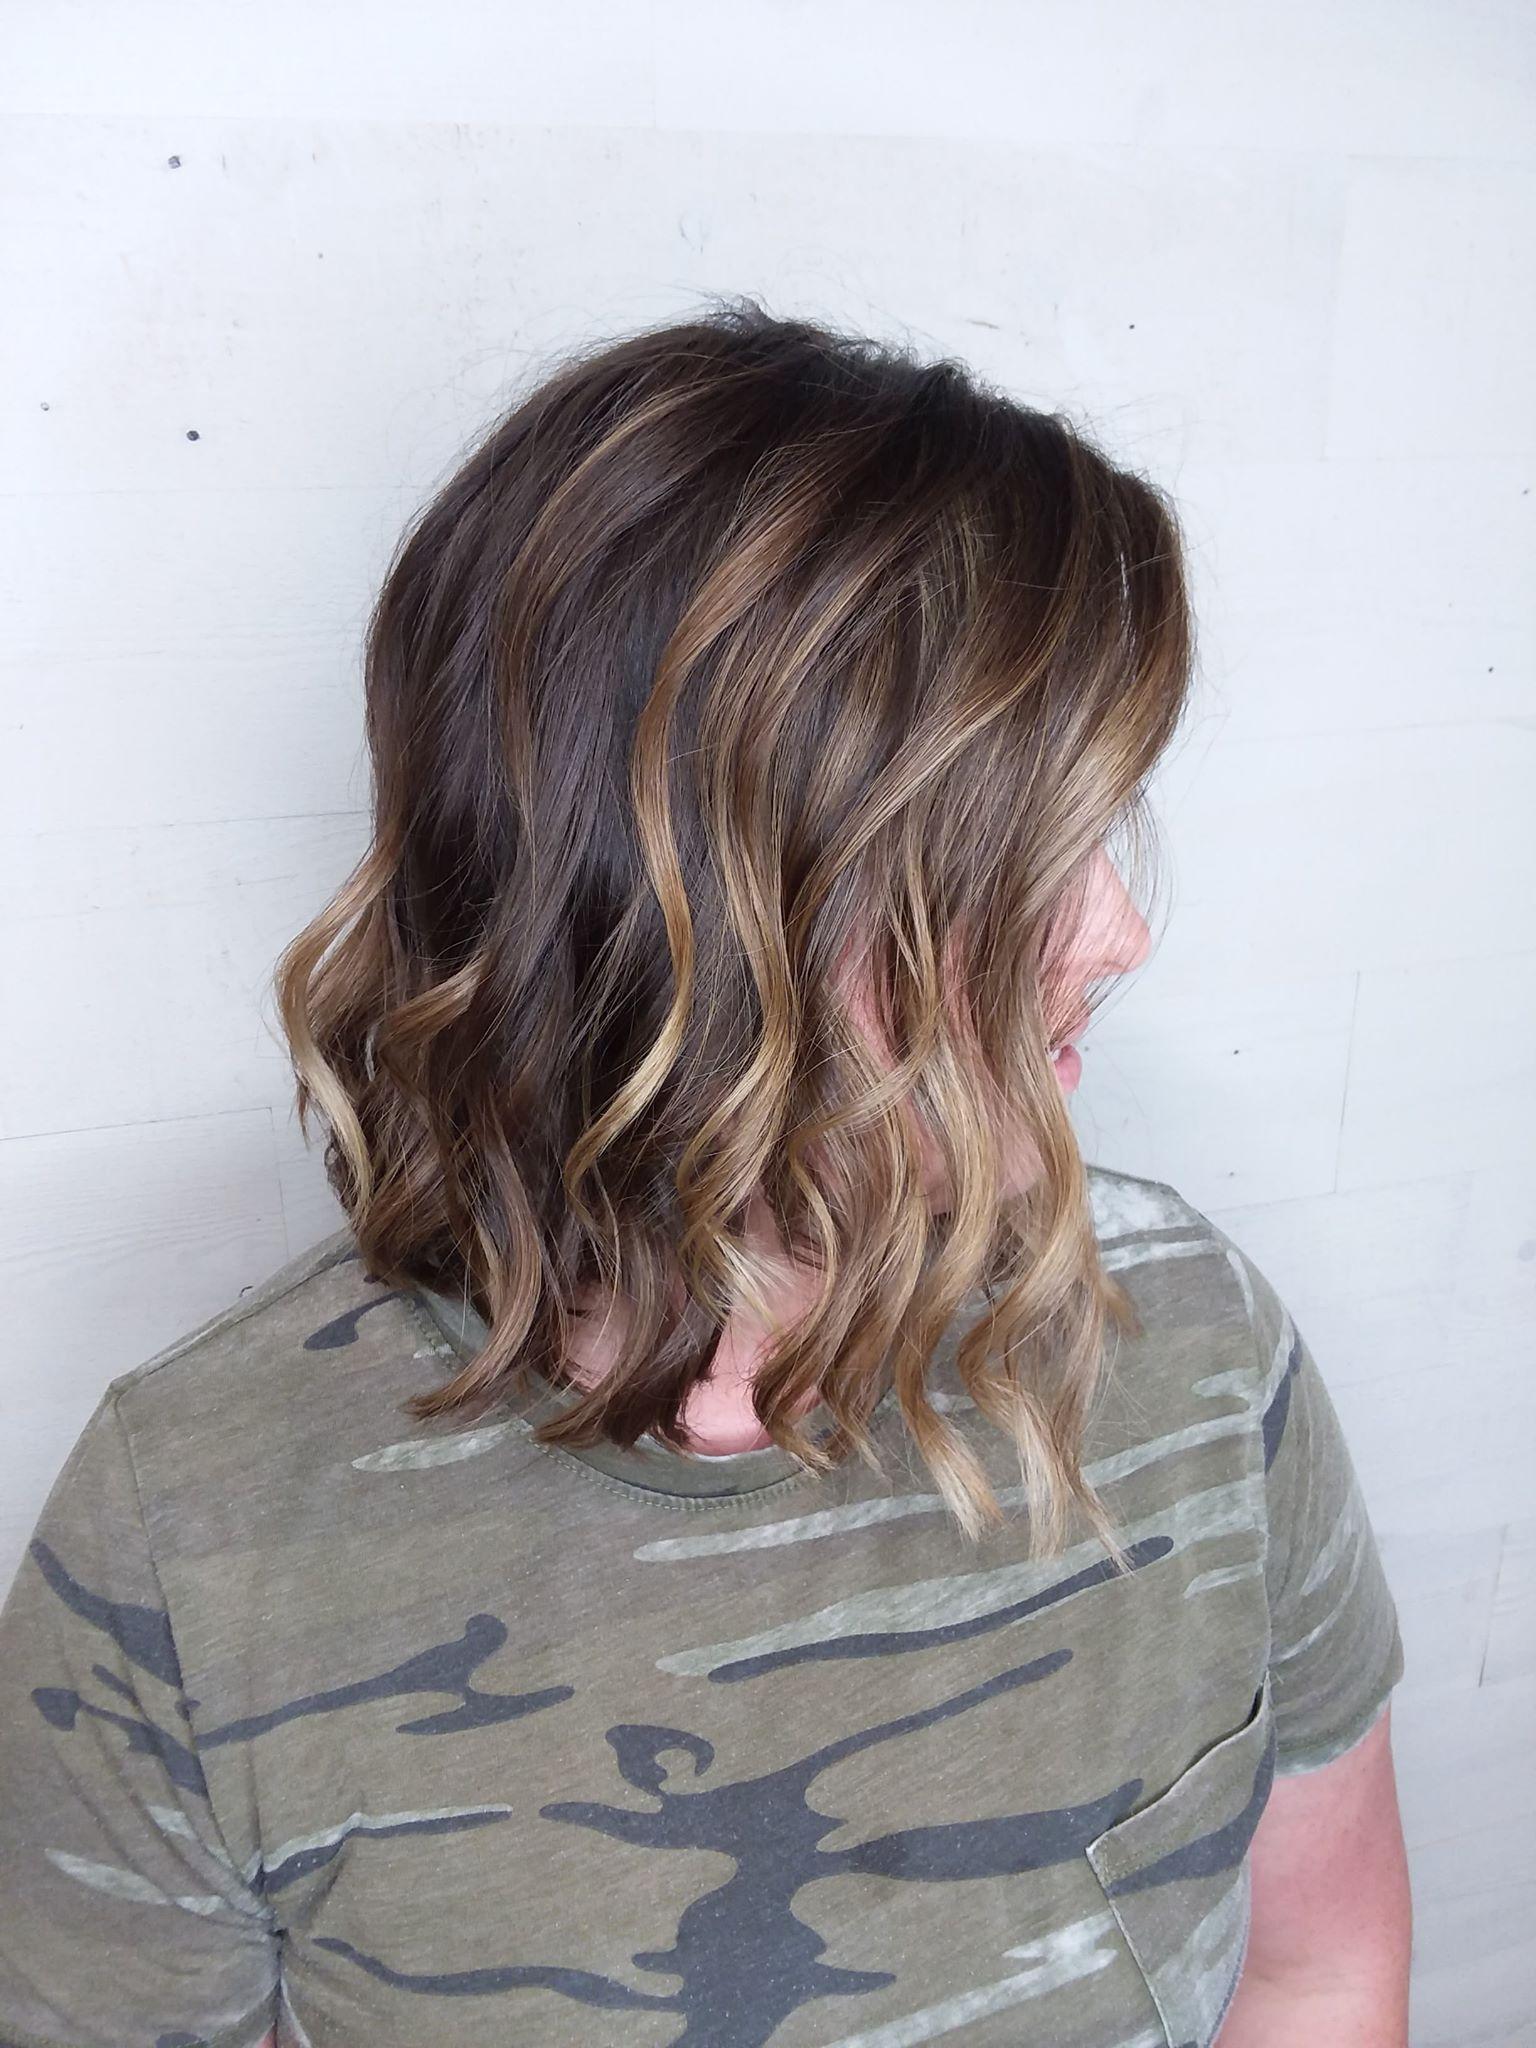 balayage hair color fond du lac salon